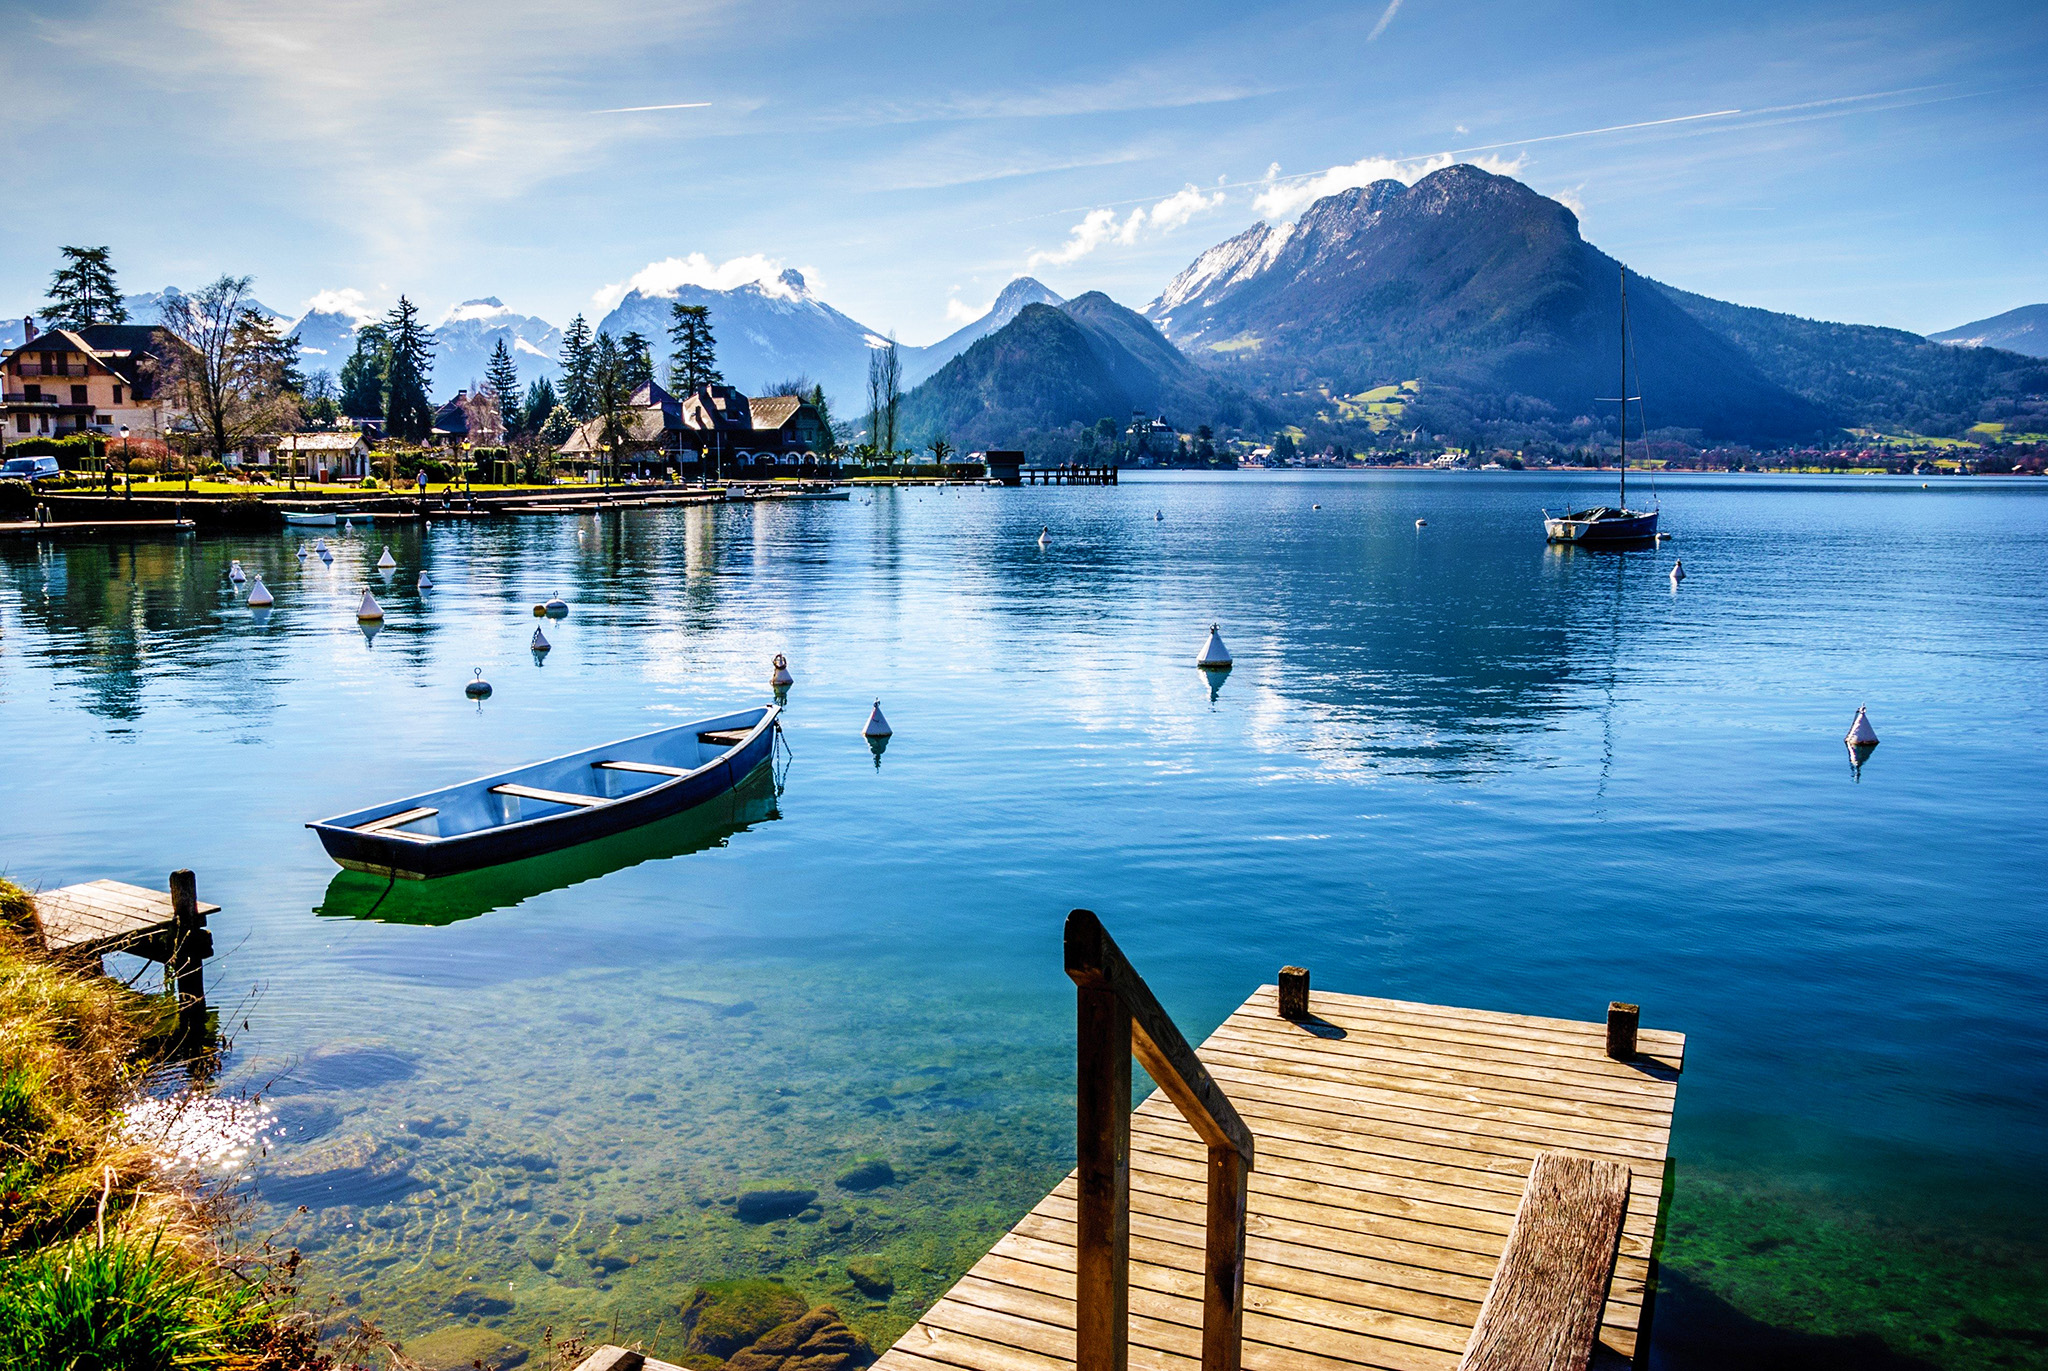 kt_2020_370_Keytours_excursions_Swisstours_annecy_lac1_2048_10